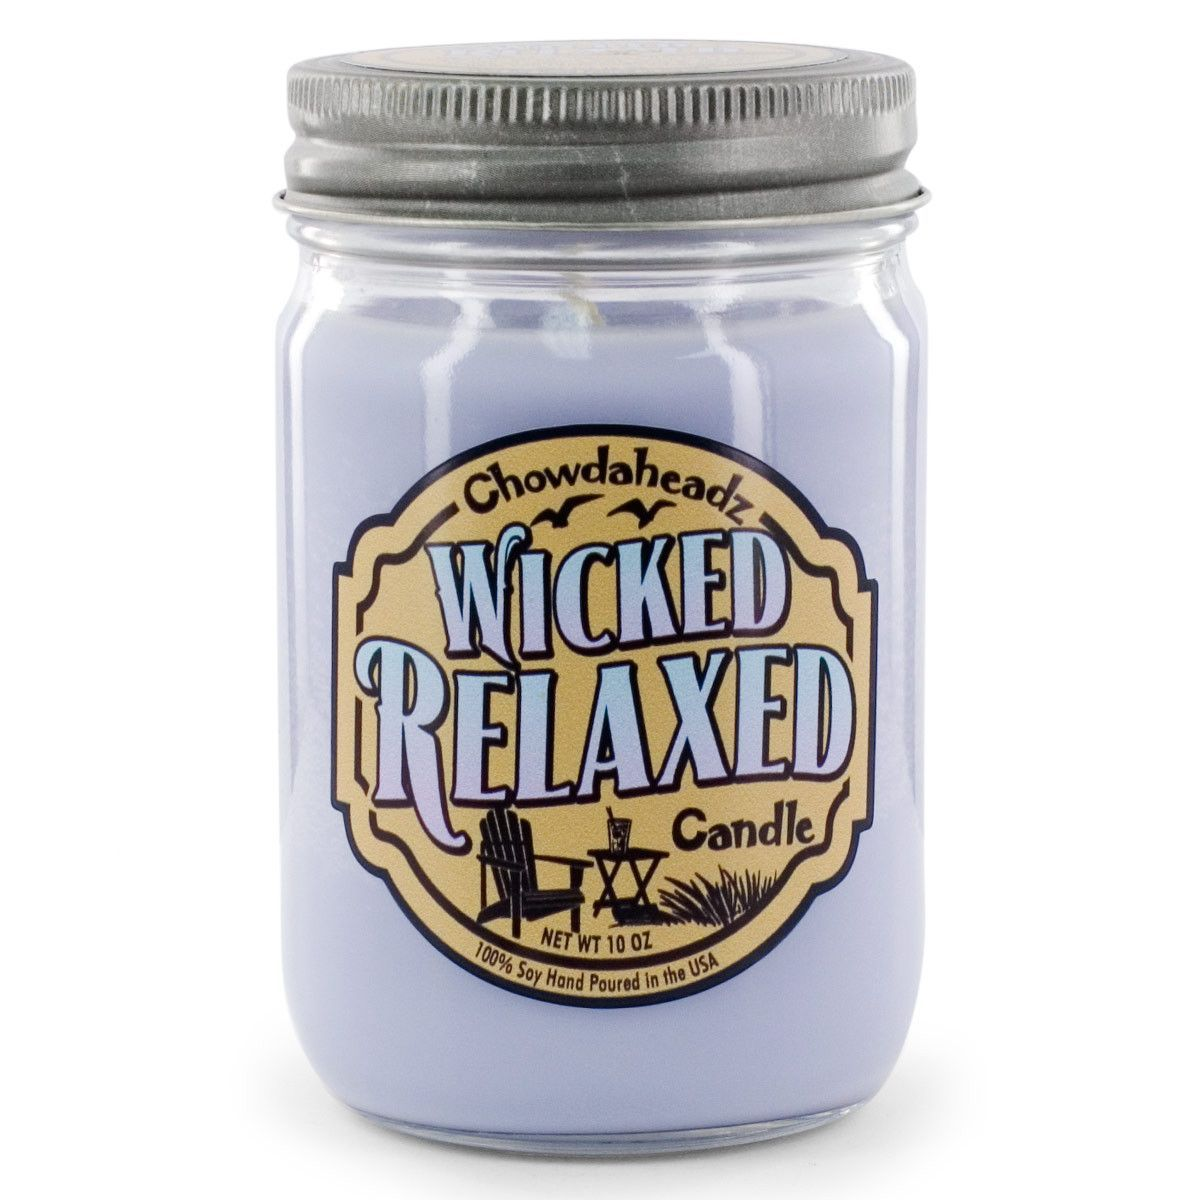 Wicked Relaxed Candle